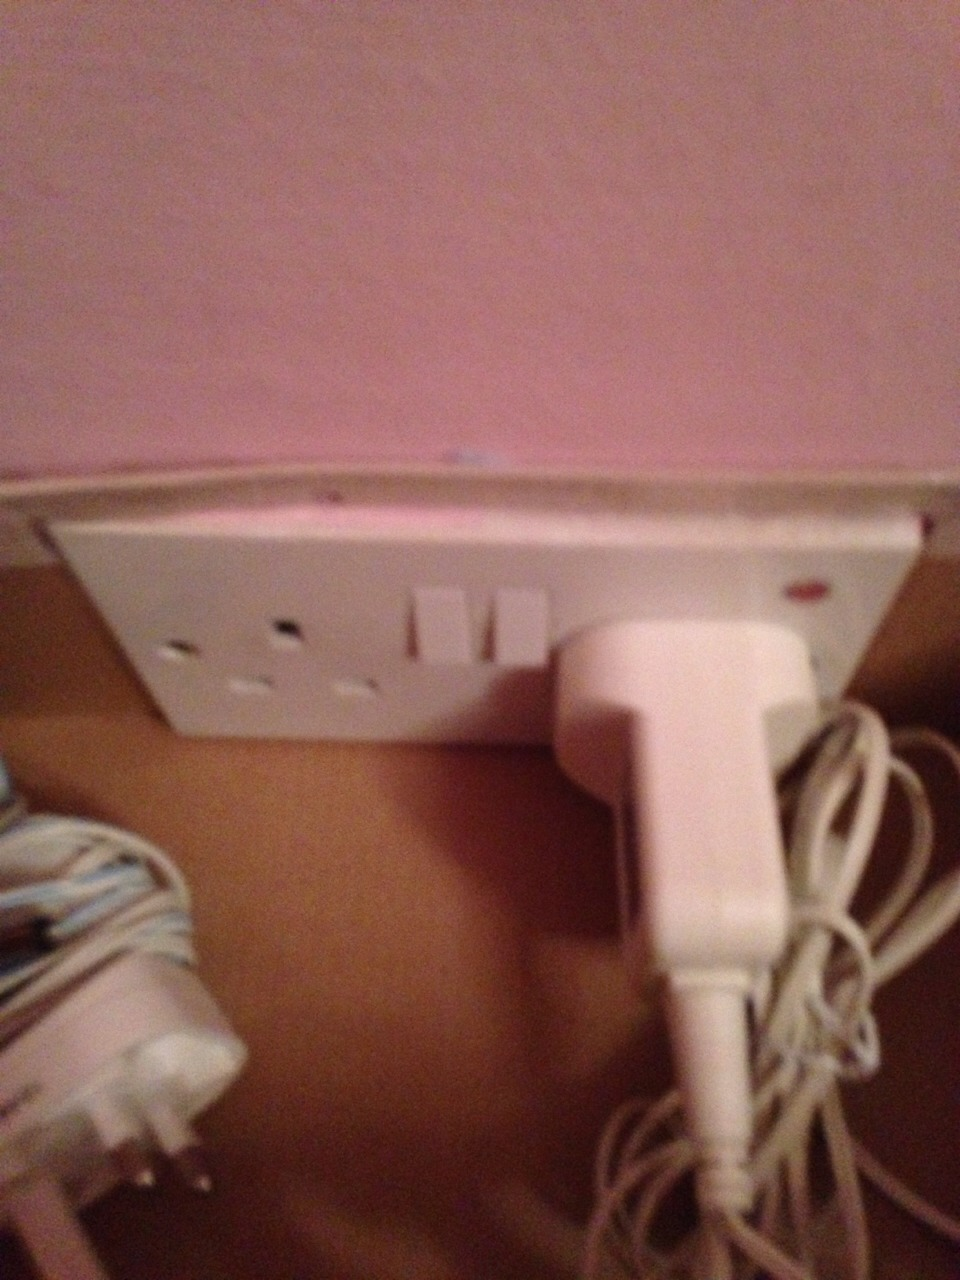 Measure out your plug point and cut out a square in the back of the box using those measurements.